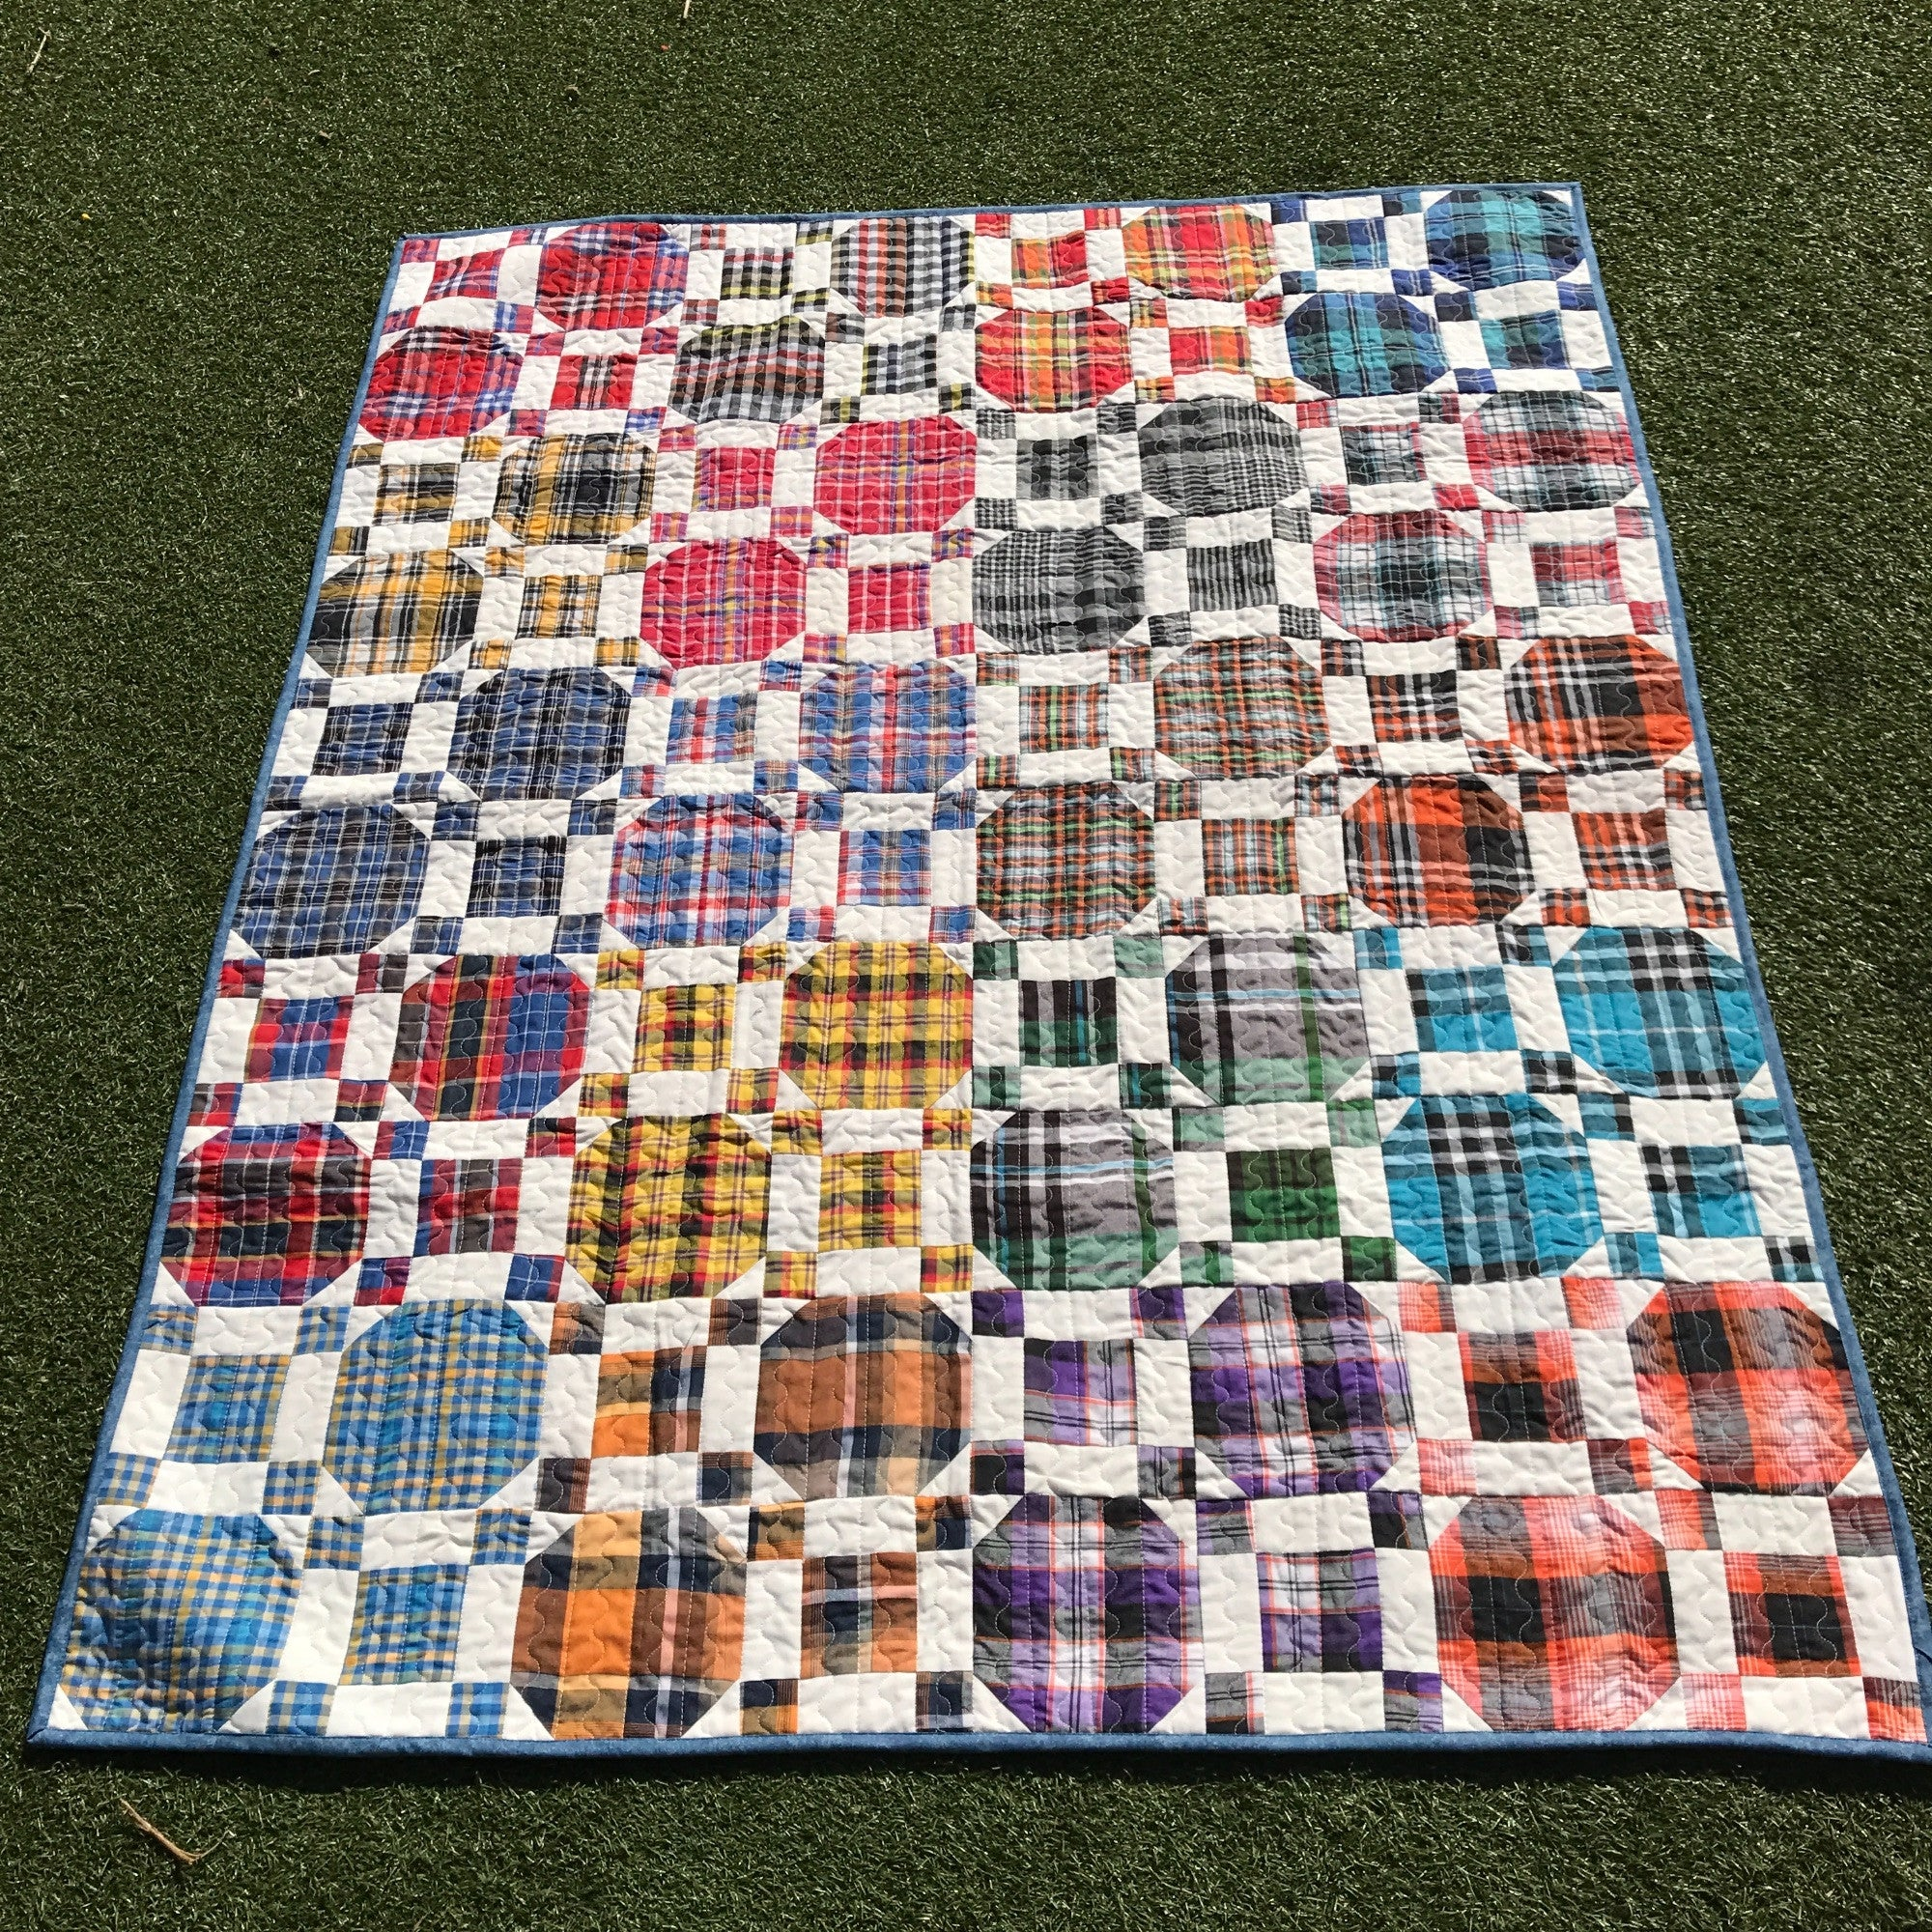 Relaxed Weekend Quilt - Alessandra Handmade Creations